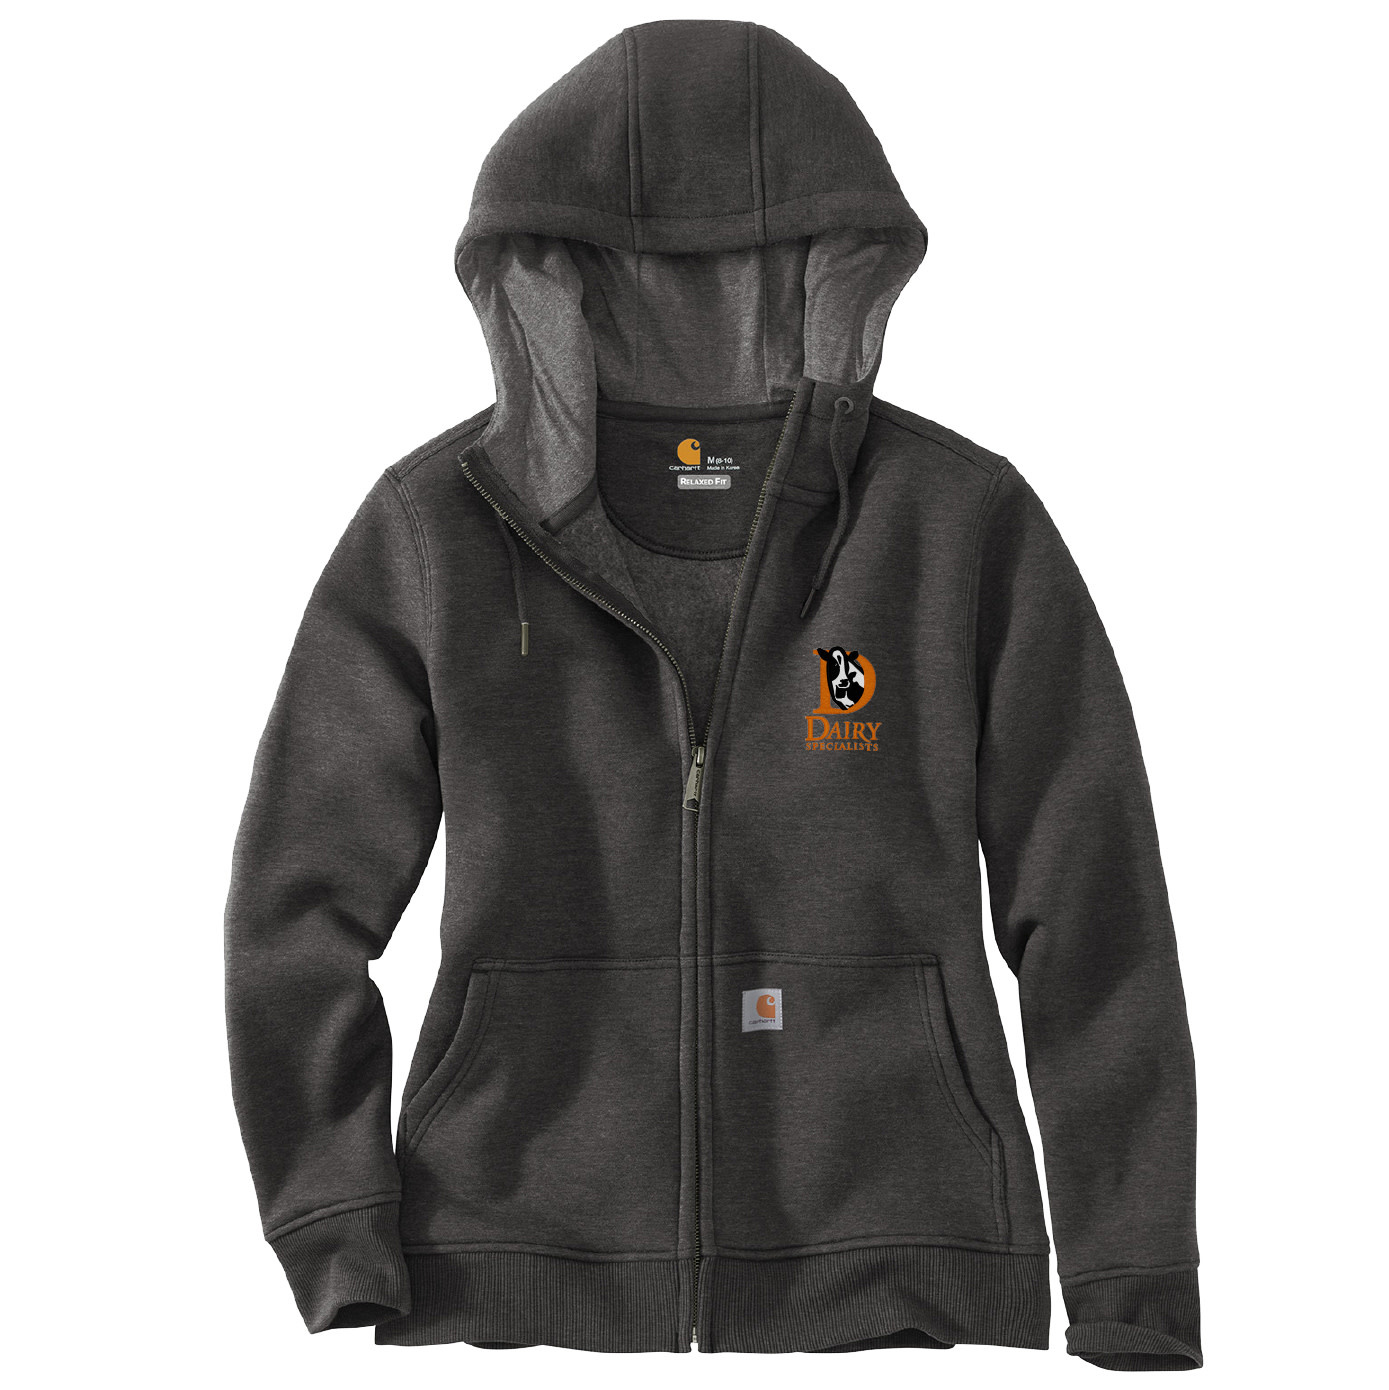 Carhartt Carhartt Women's Clarksburg Full-Zip Hoodie (Carbon Heather)